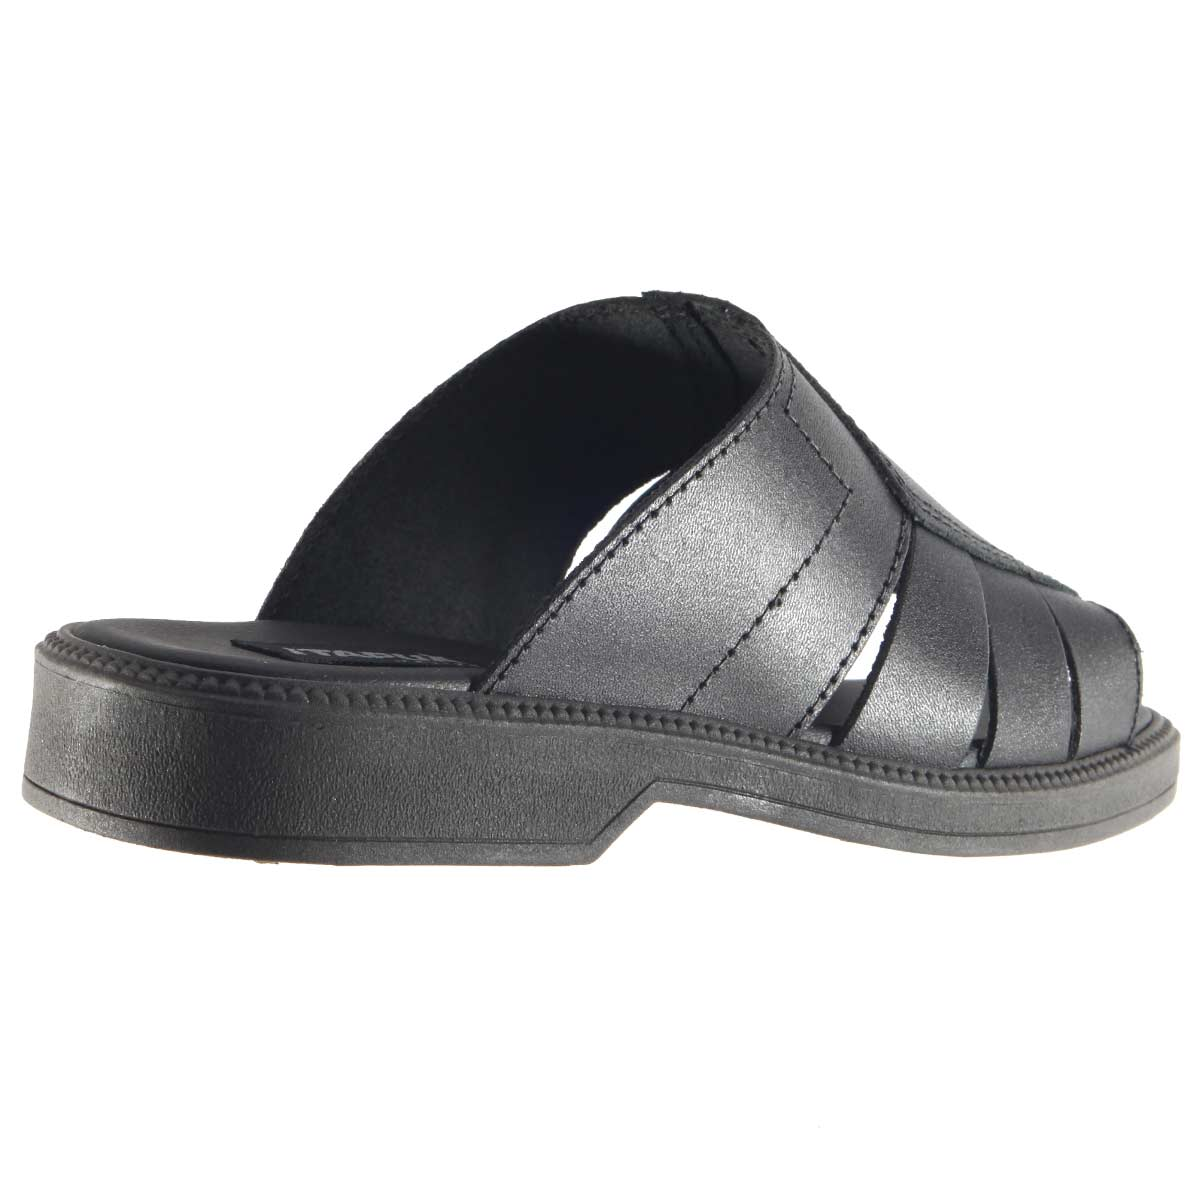 Chinelo Itapuã Masculina Couro Legítimo 1501